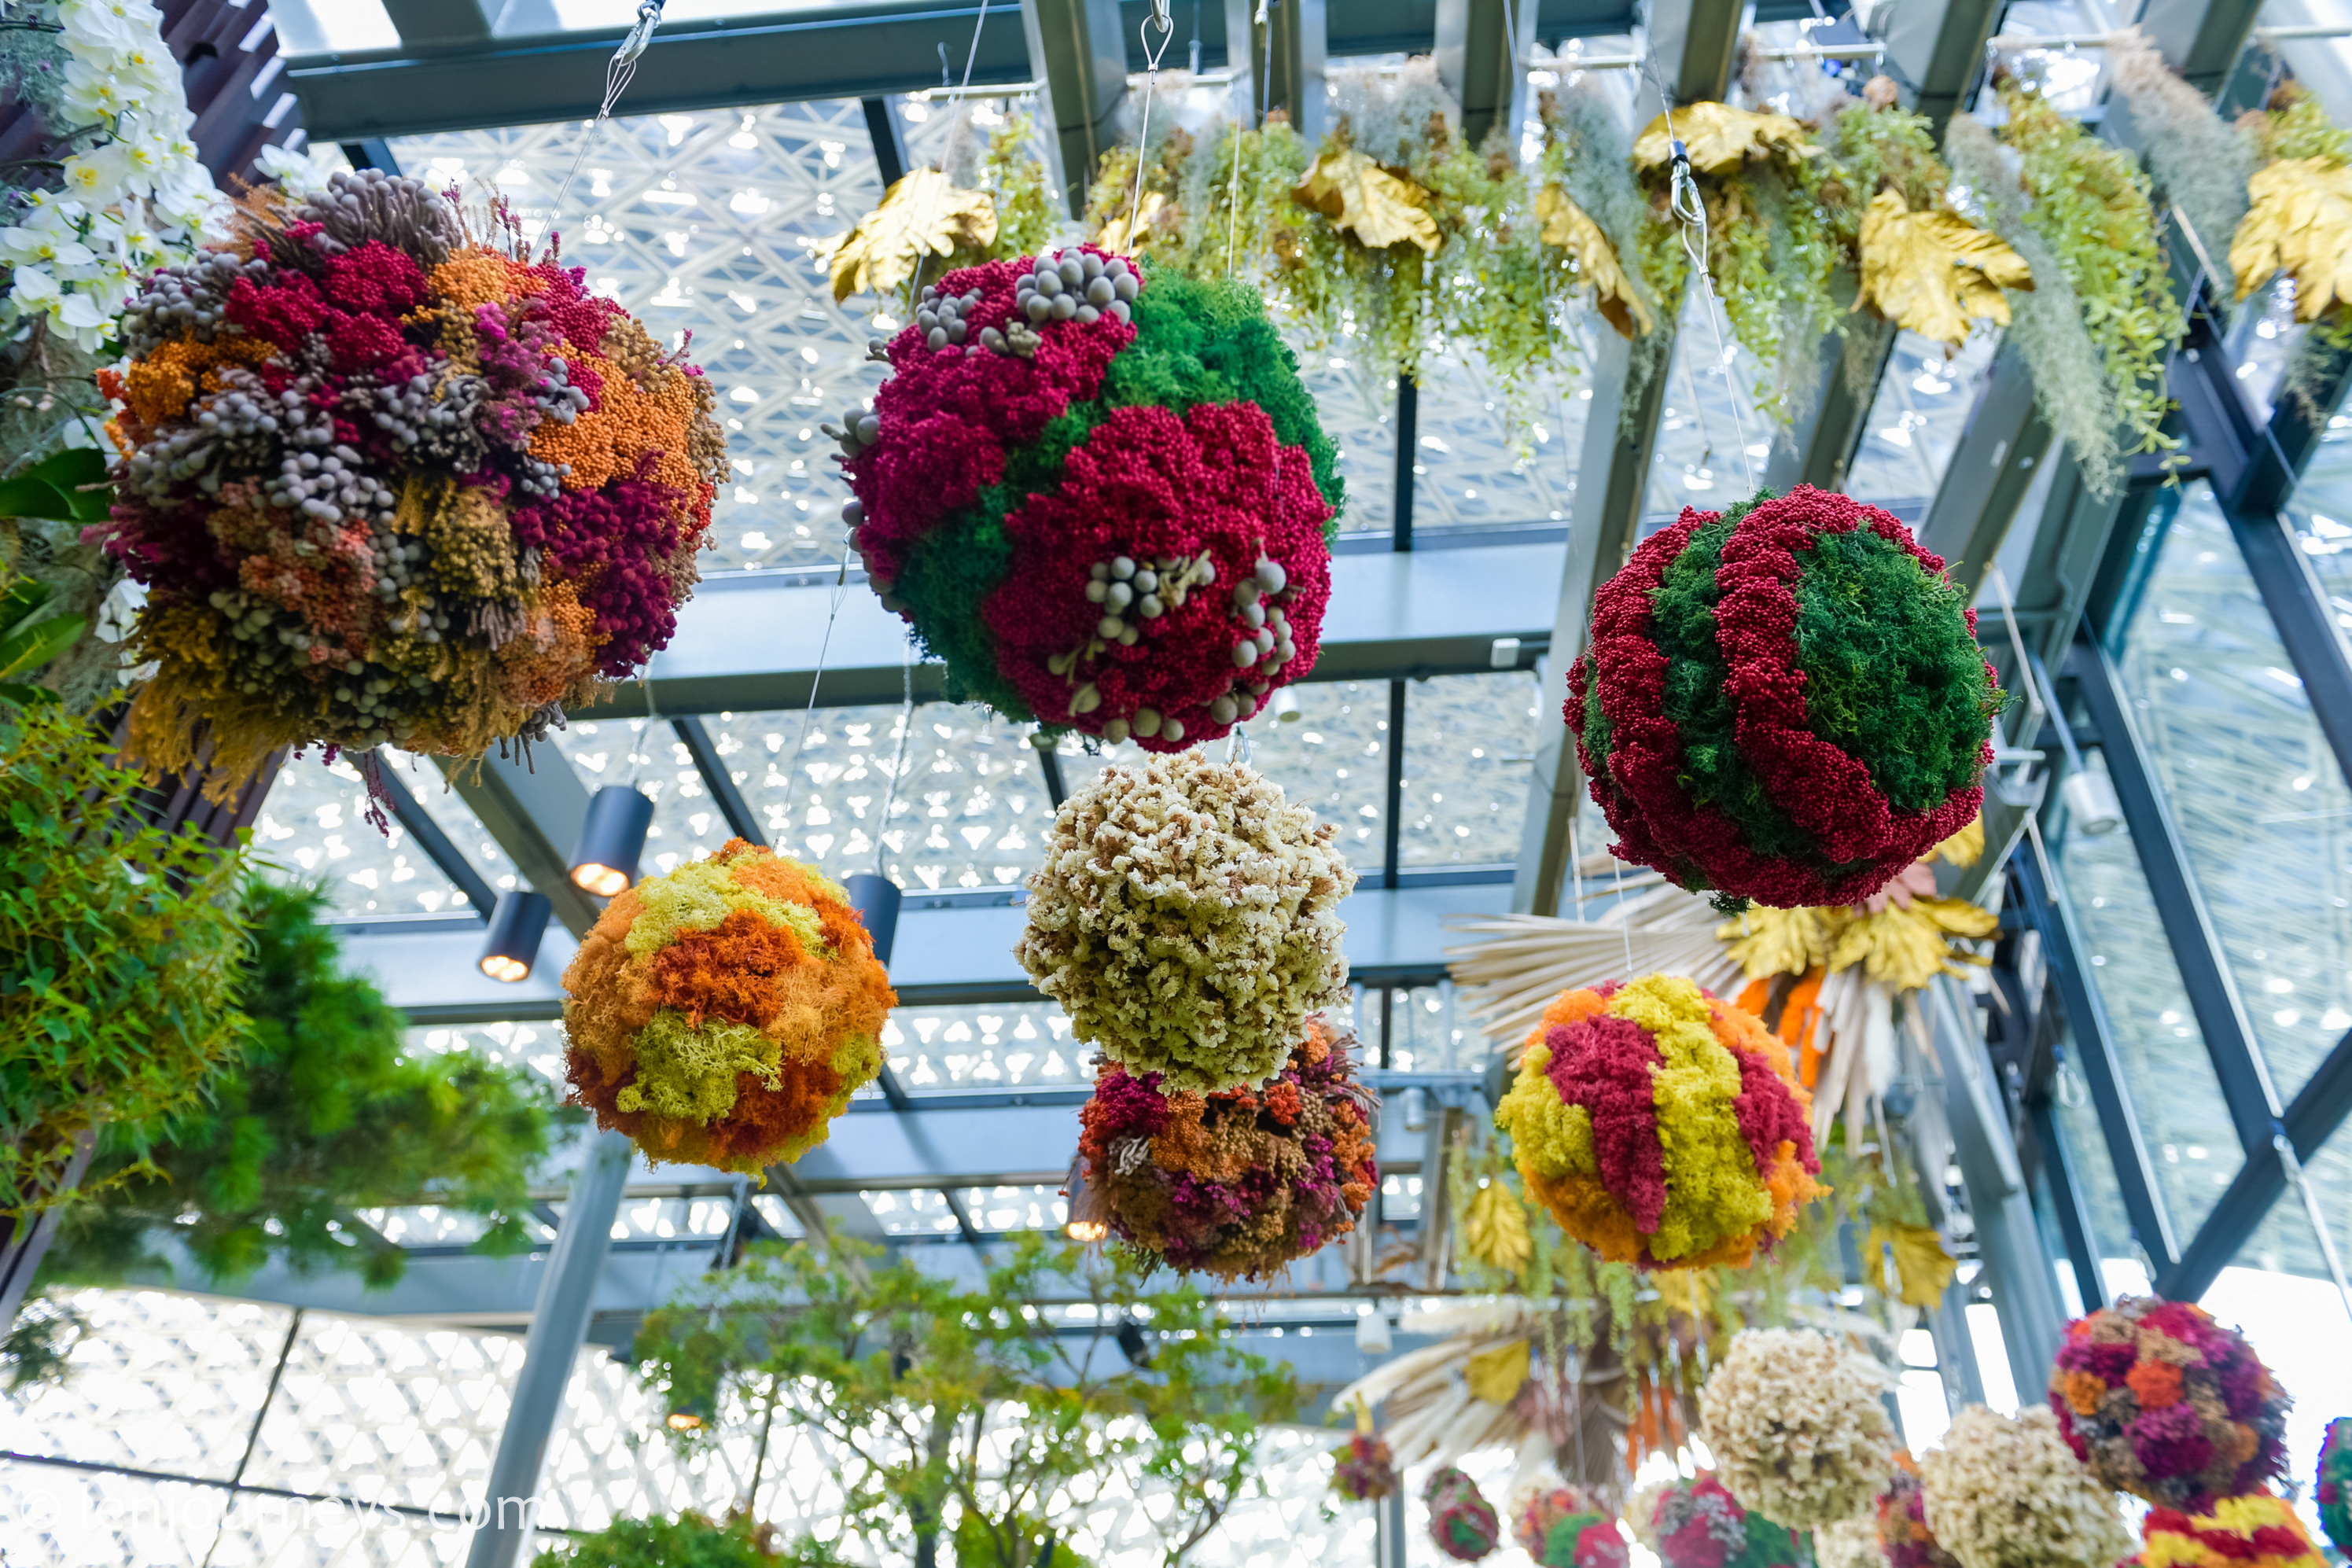 Hanging garden at Floral Fantasy